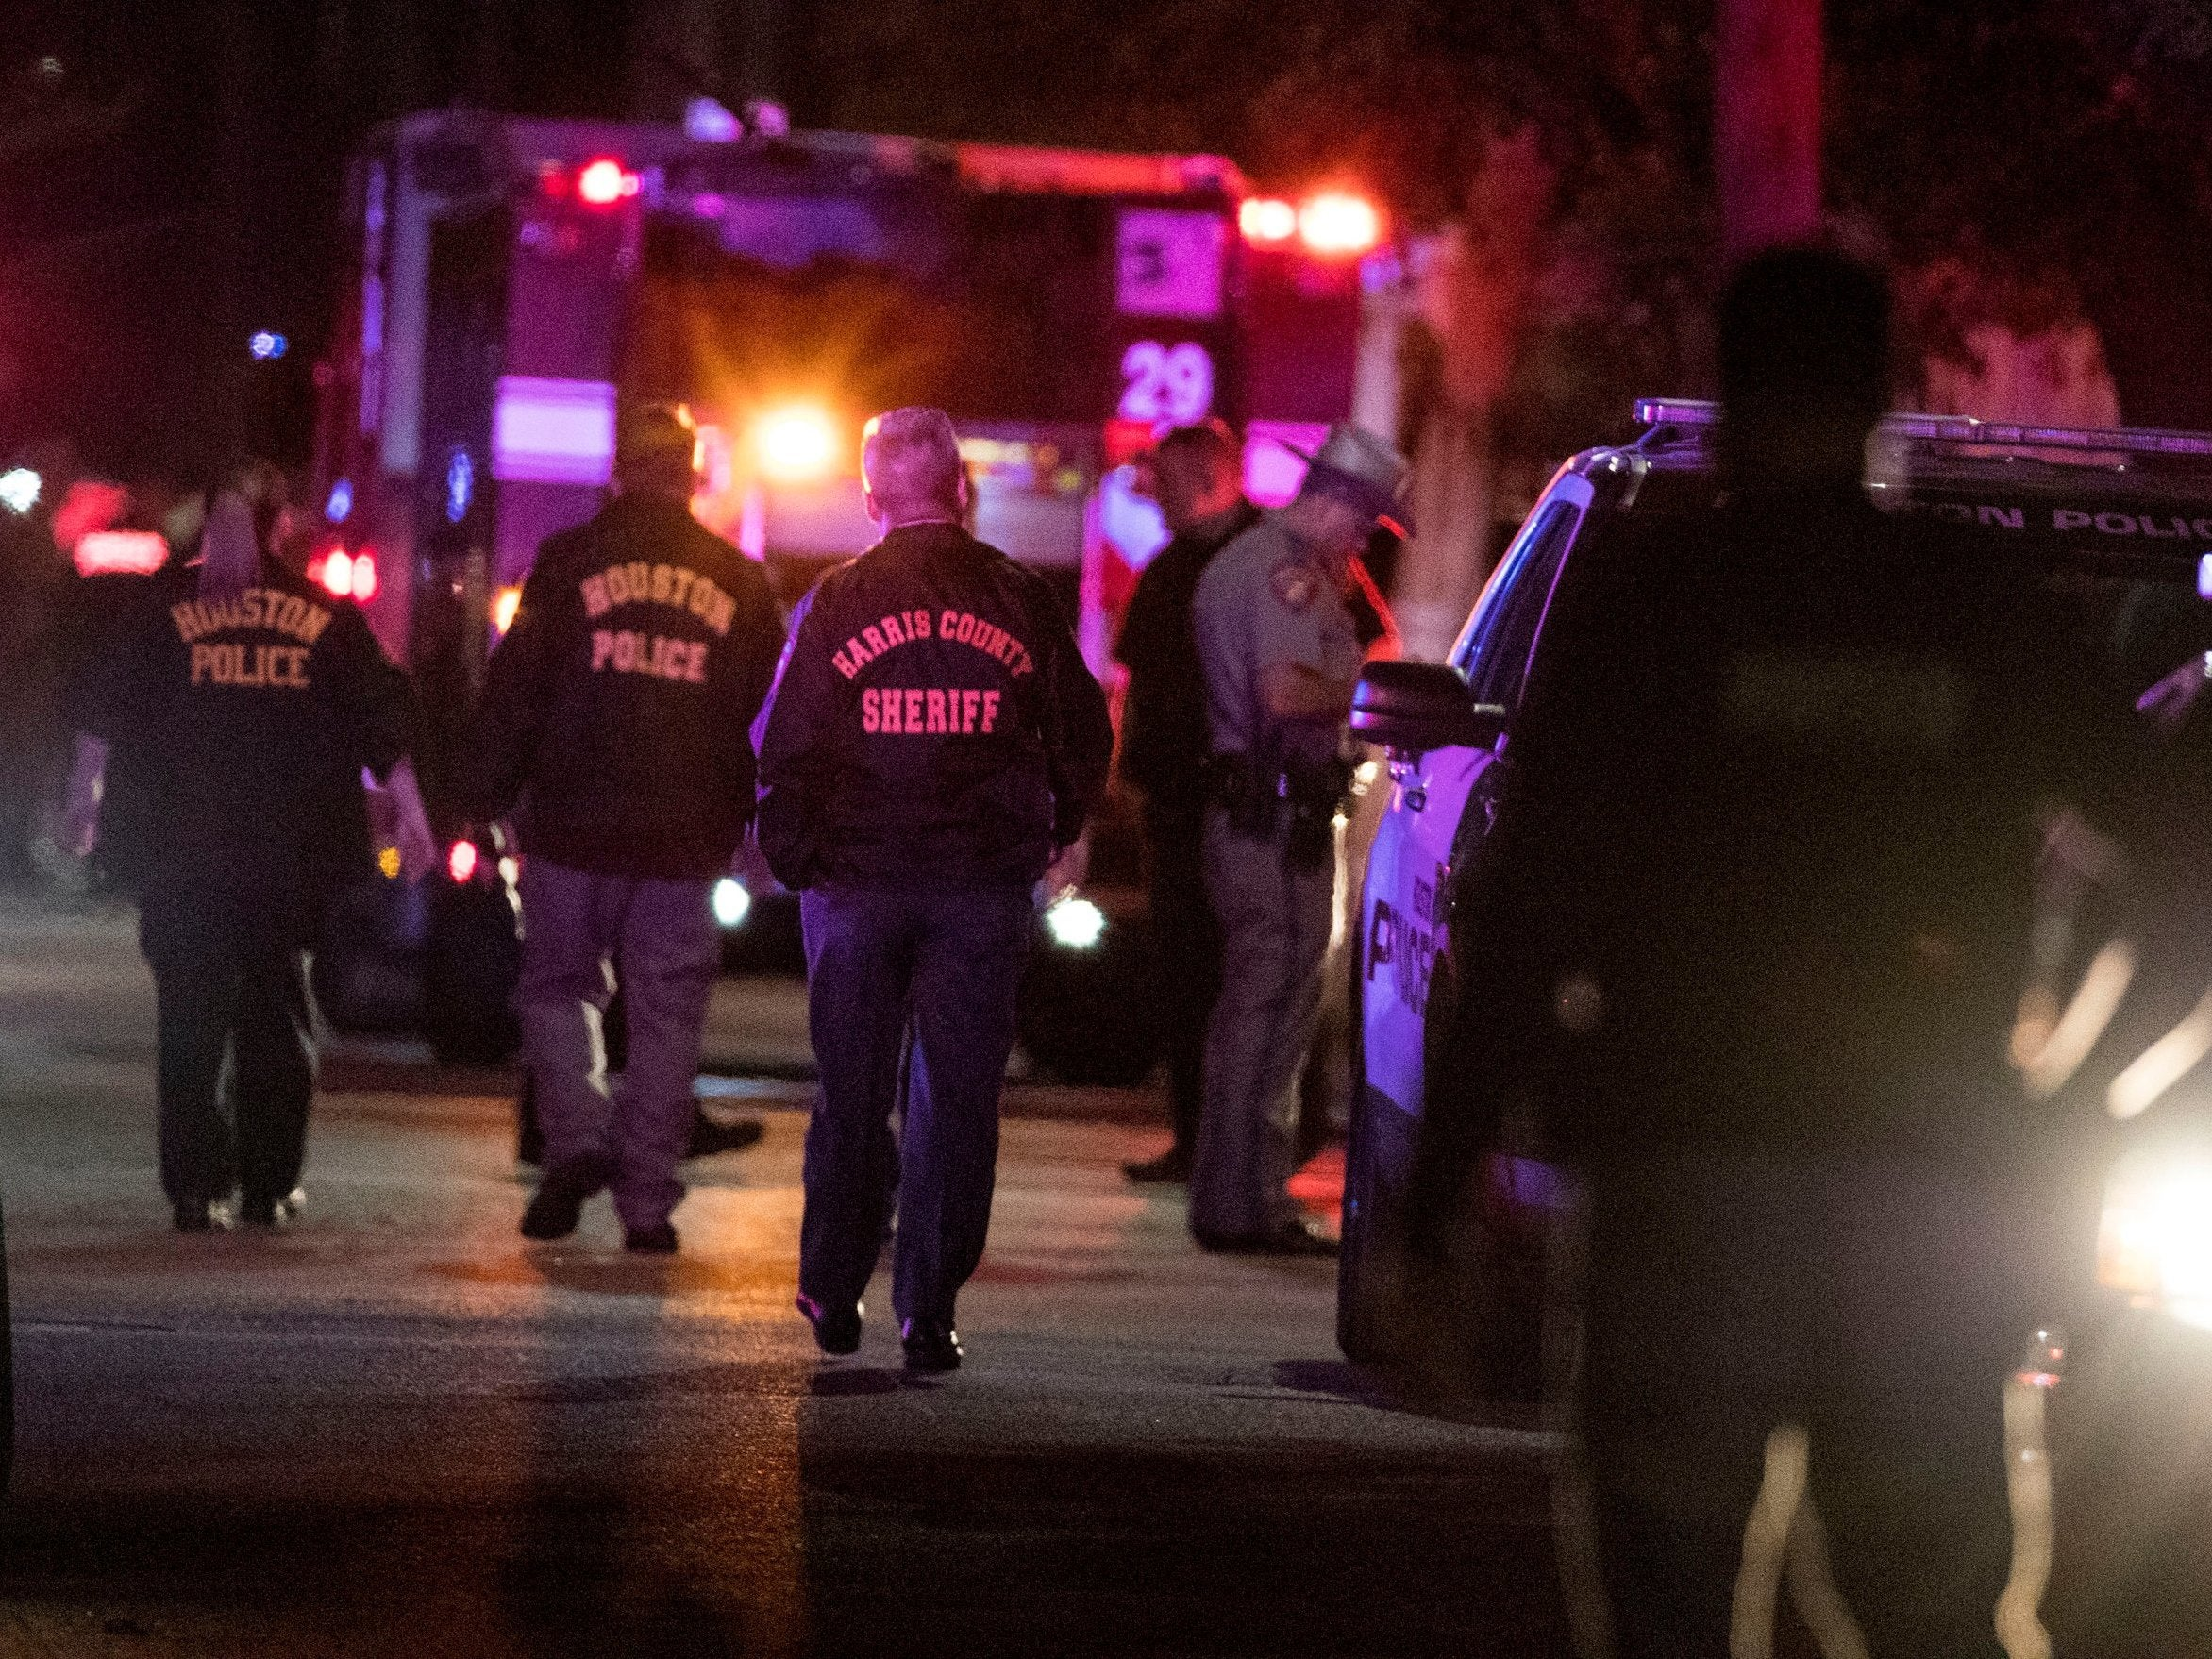 police shooting - latest news, breaking stories and comment